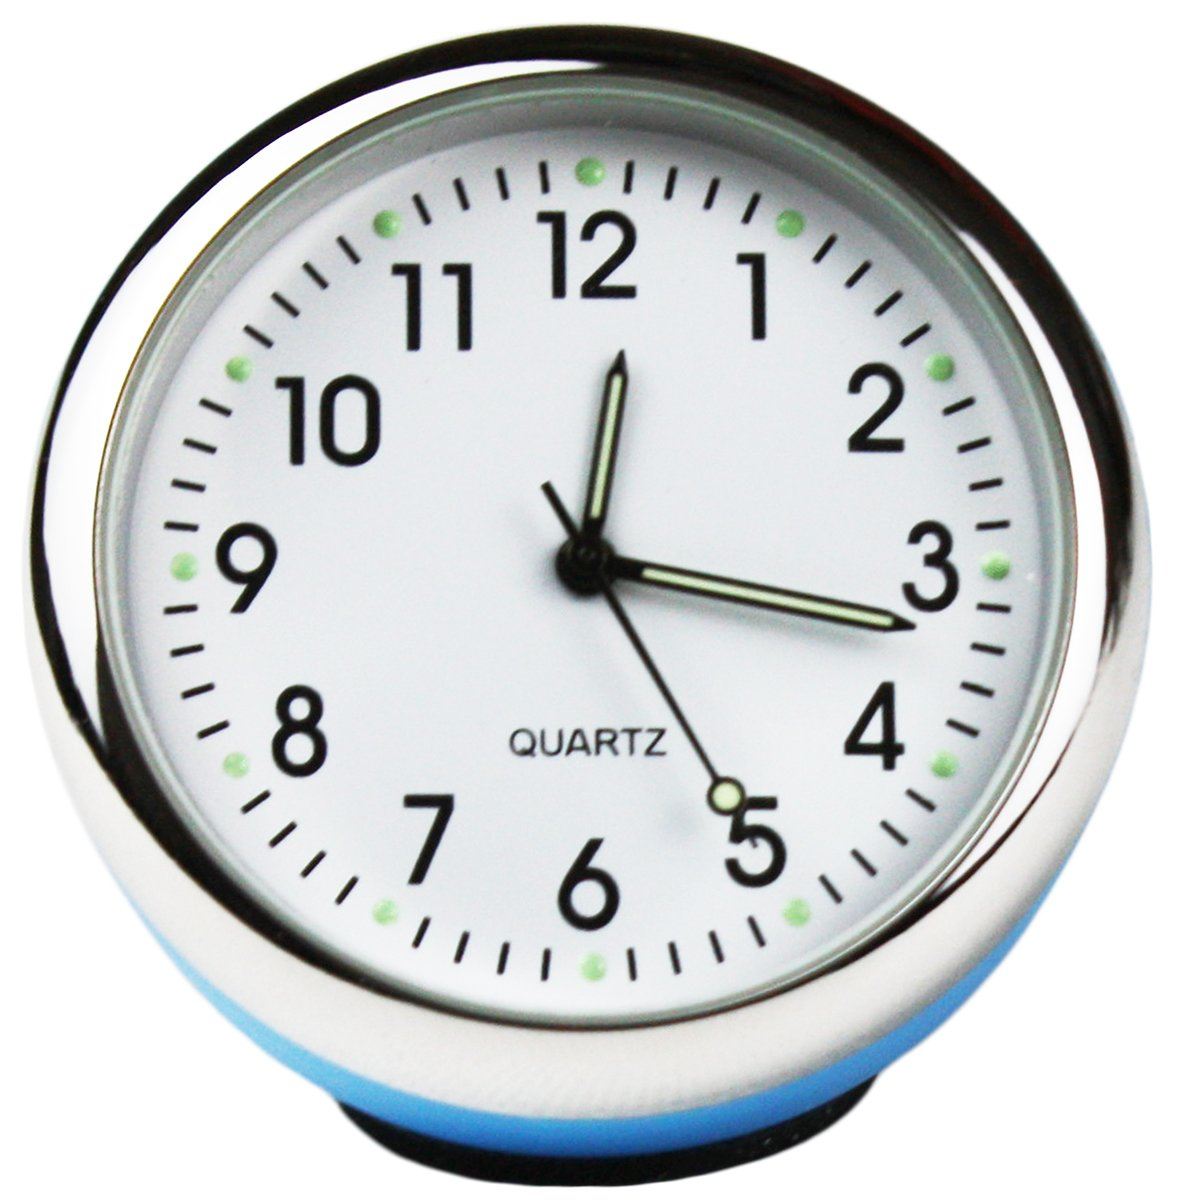 Txian Custom High Accuracy Car Clock Small Round Onboard Quartz Clock Perfect Car Decoration (white dial & white shell)